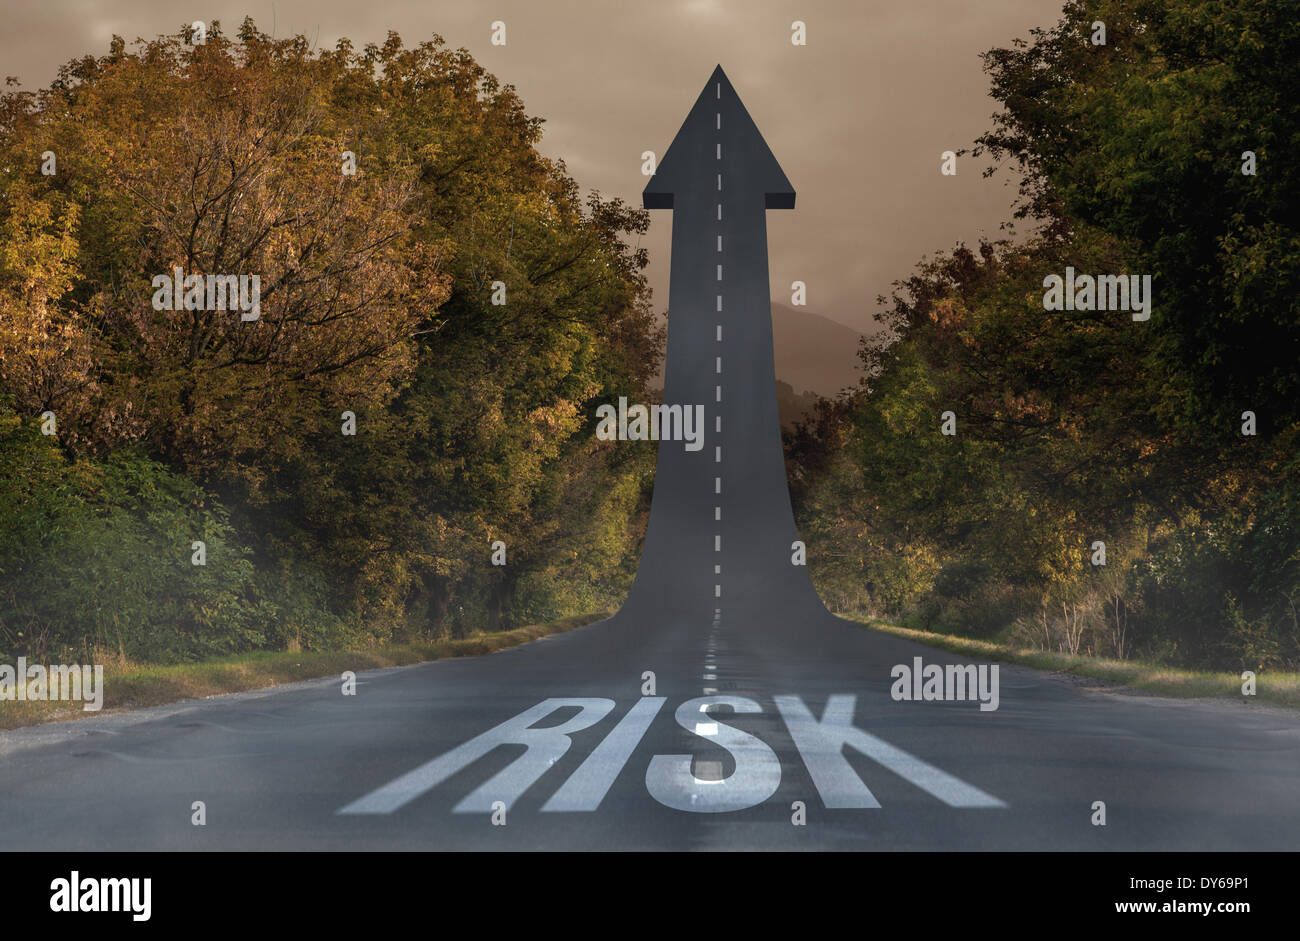 Risk against road turning into arrow - Stock Image